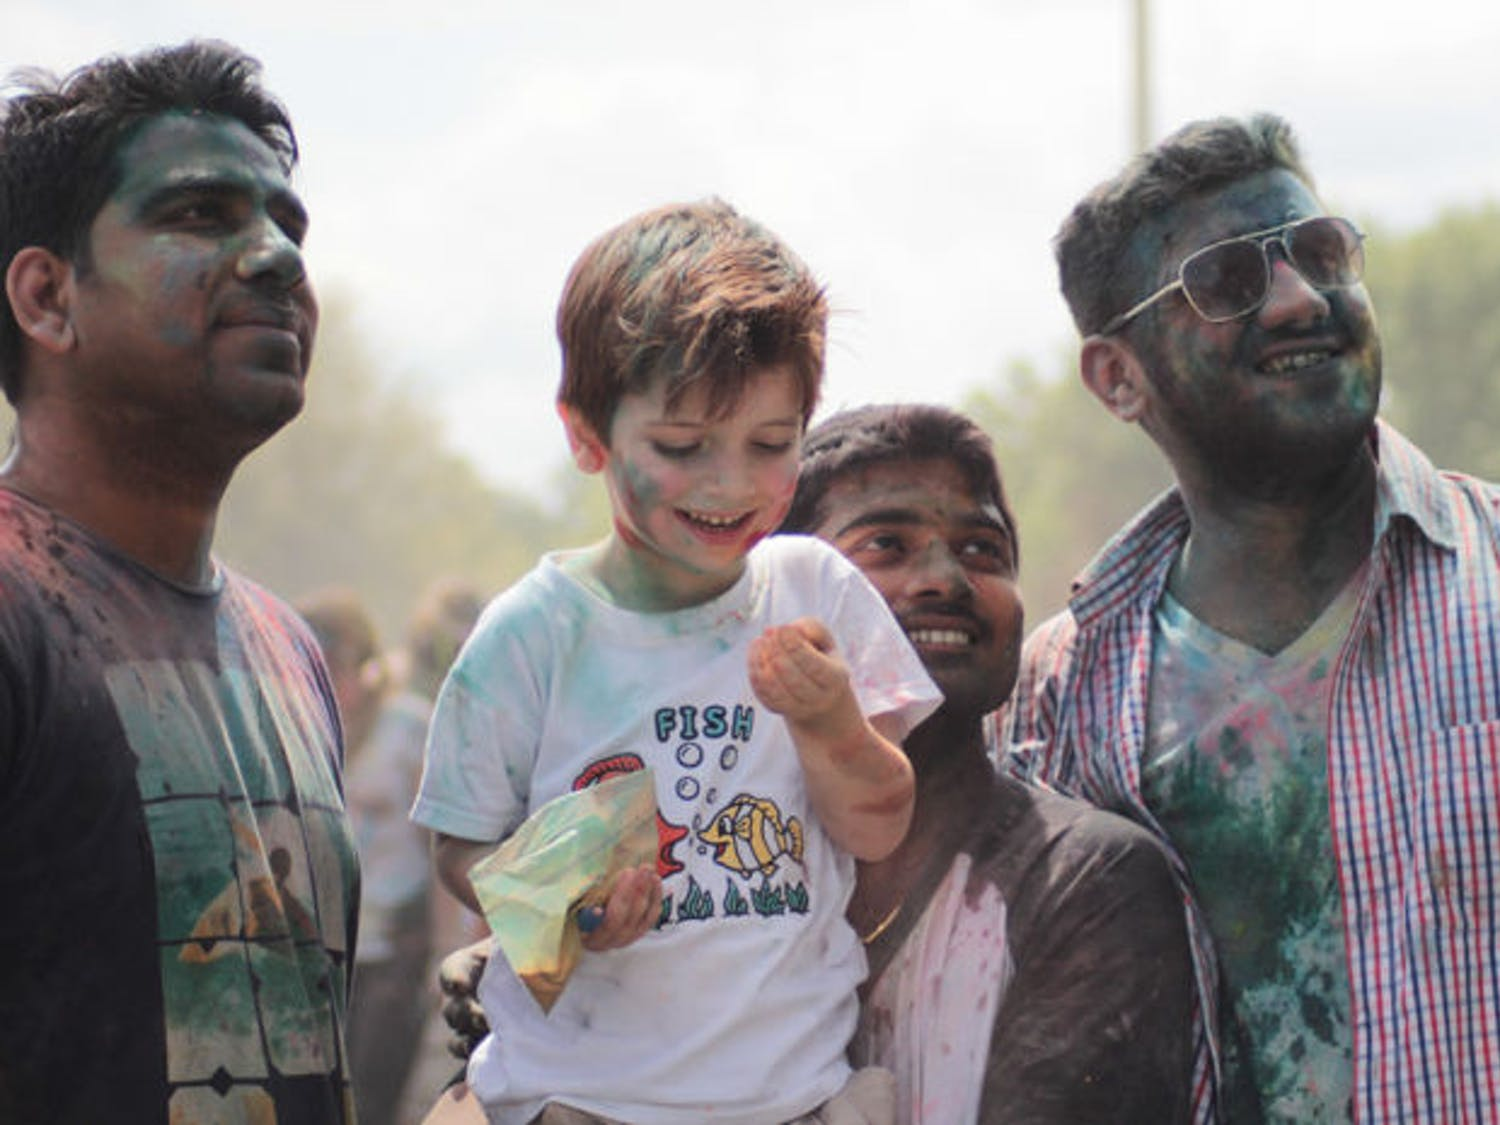 Covered with colored powder and mud, UF Holi Festival of Colors participants watch the festival unfold Saturday on Flavet Field. Holi is one of the major religious festivals in India.